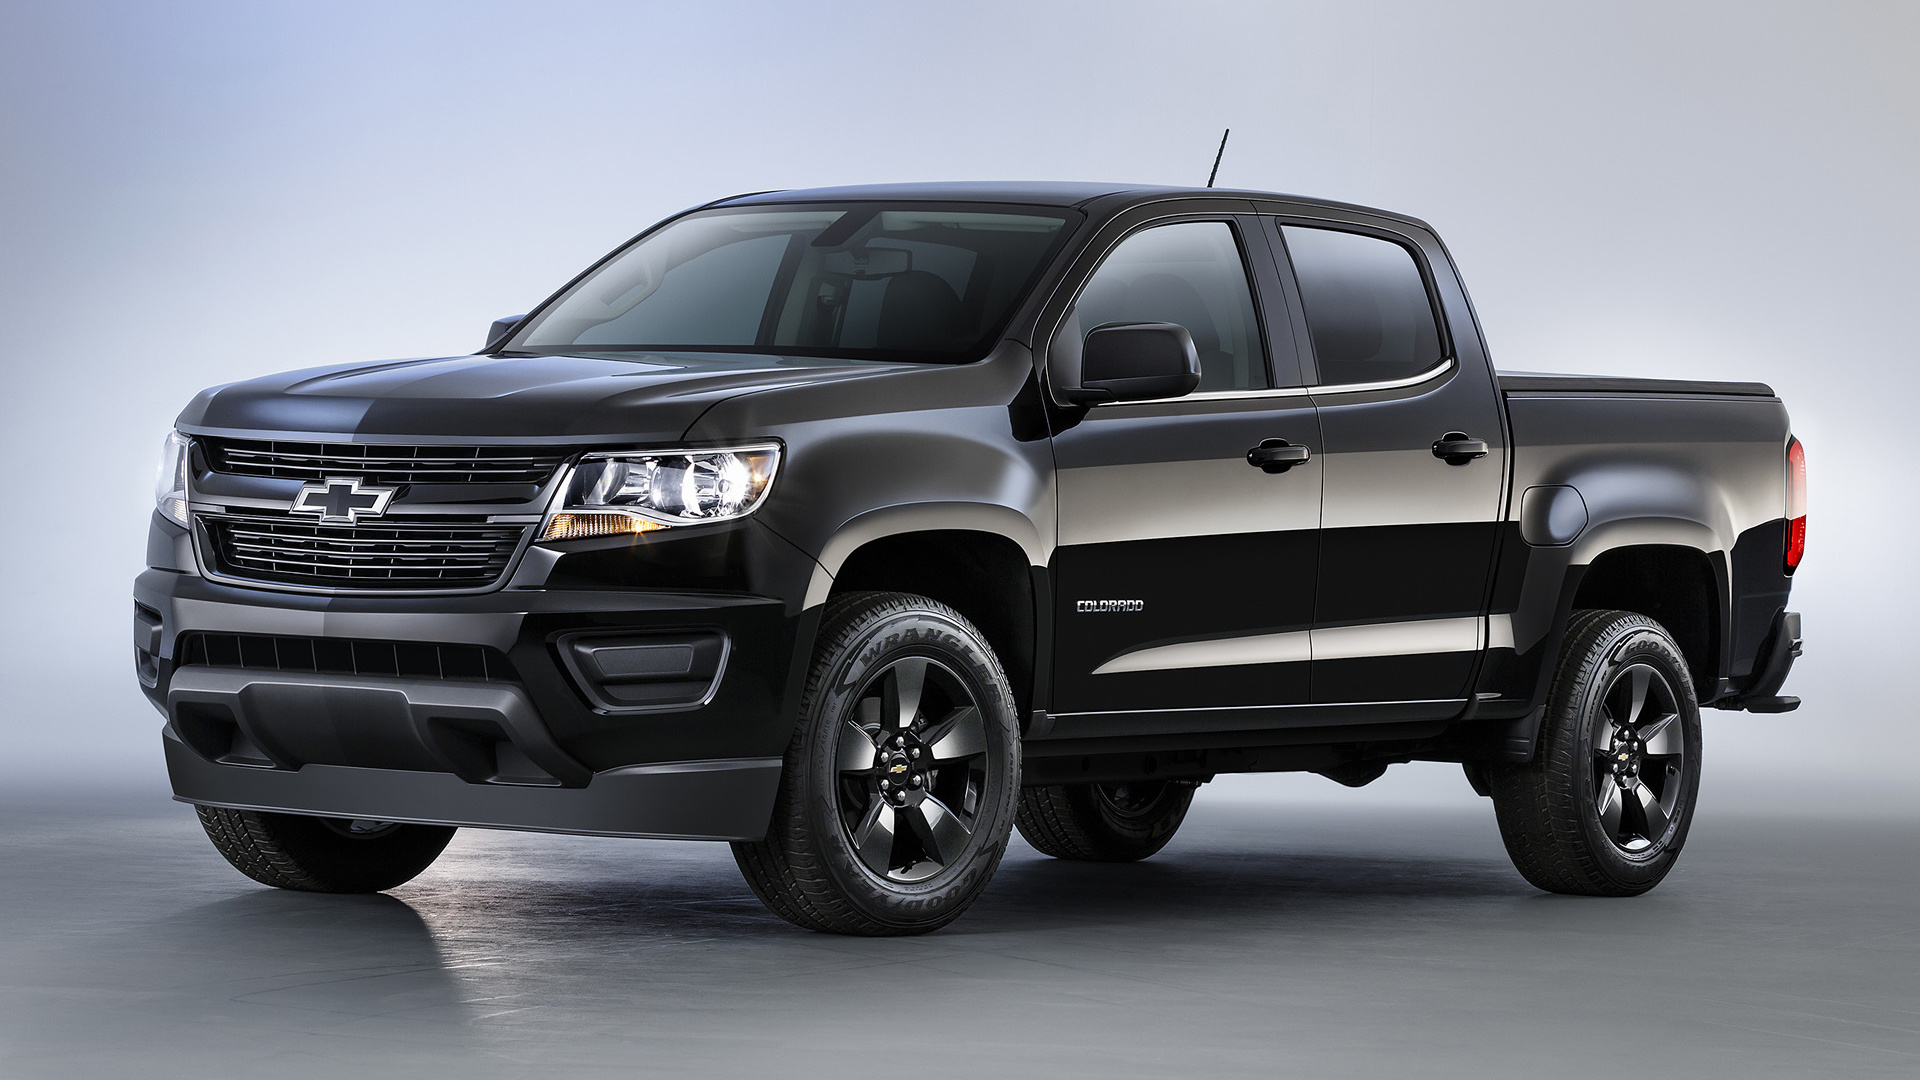 chevrolet colorado lt midnight crew cab 2016 wallpapers and hd images car pixel. Black Bedroom Furniture Sets. Home Design Ideas